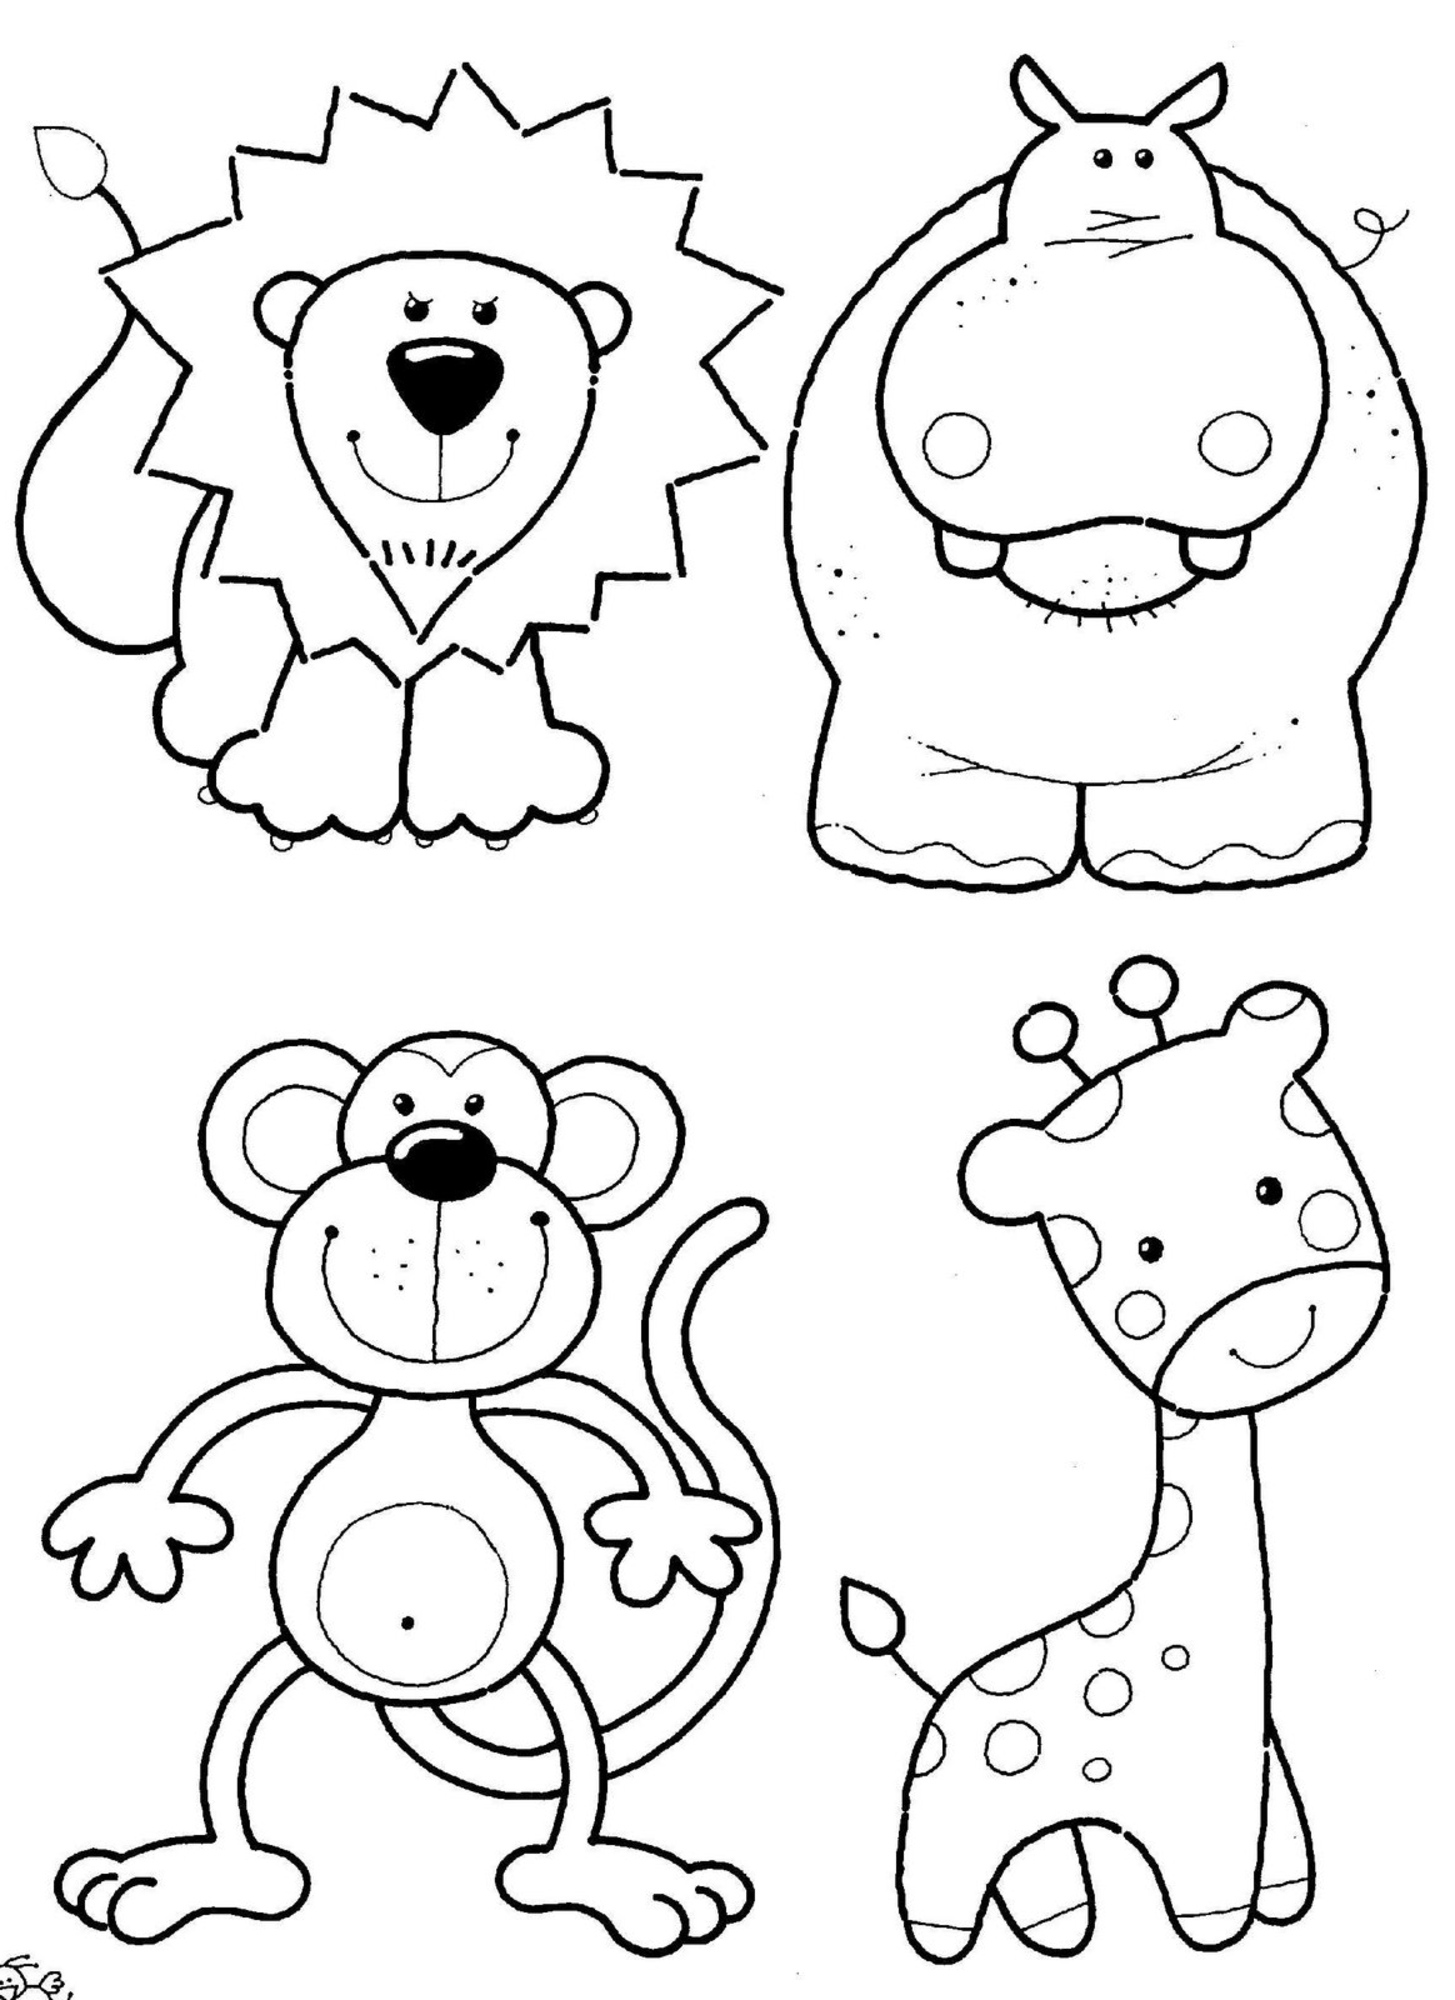 coloring page template printing thanksgiving coloring pages coloring page printing template